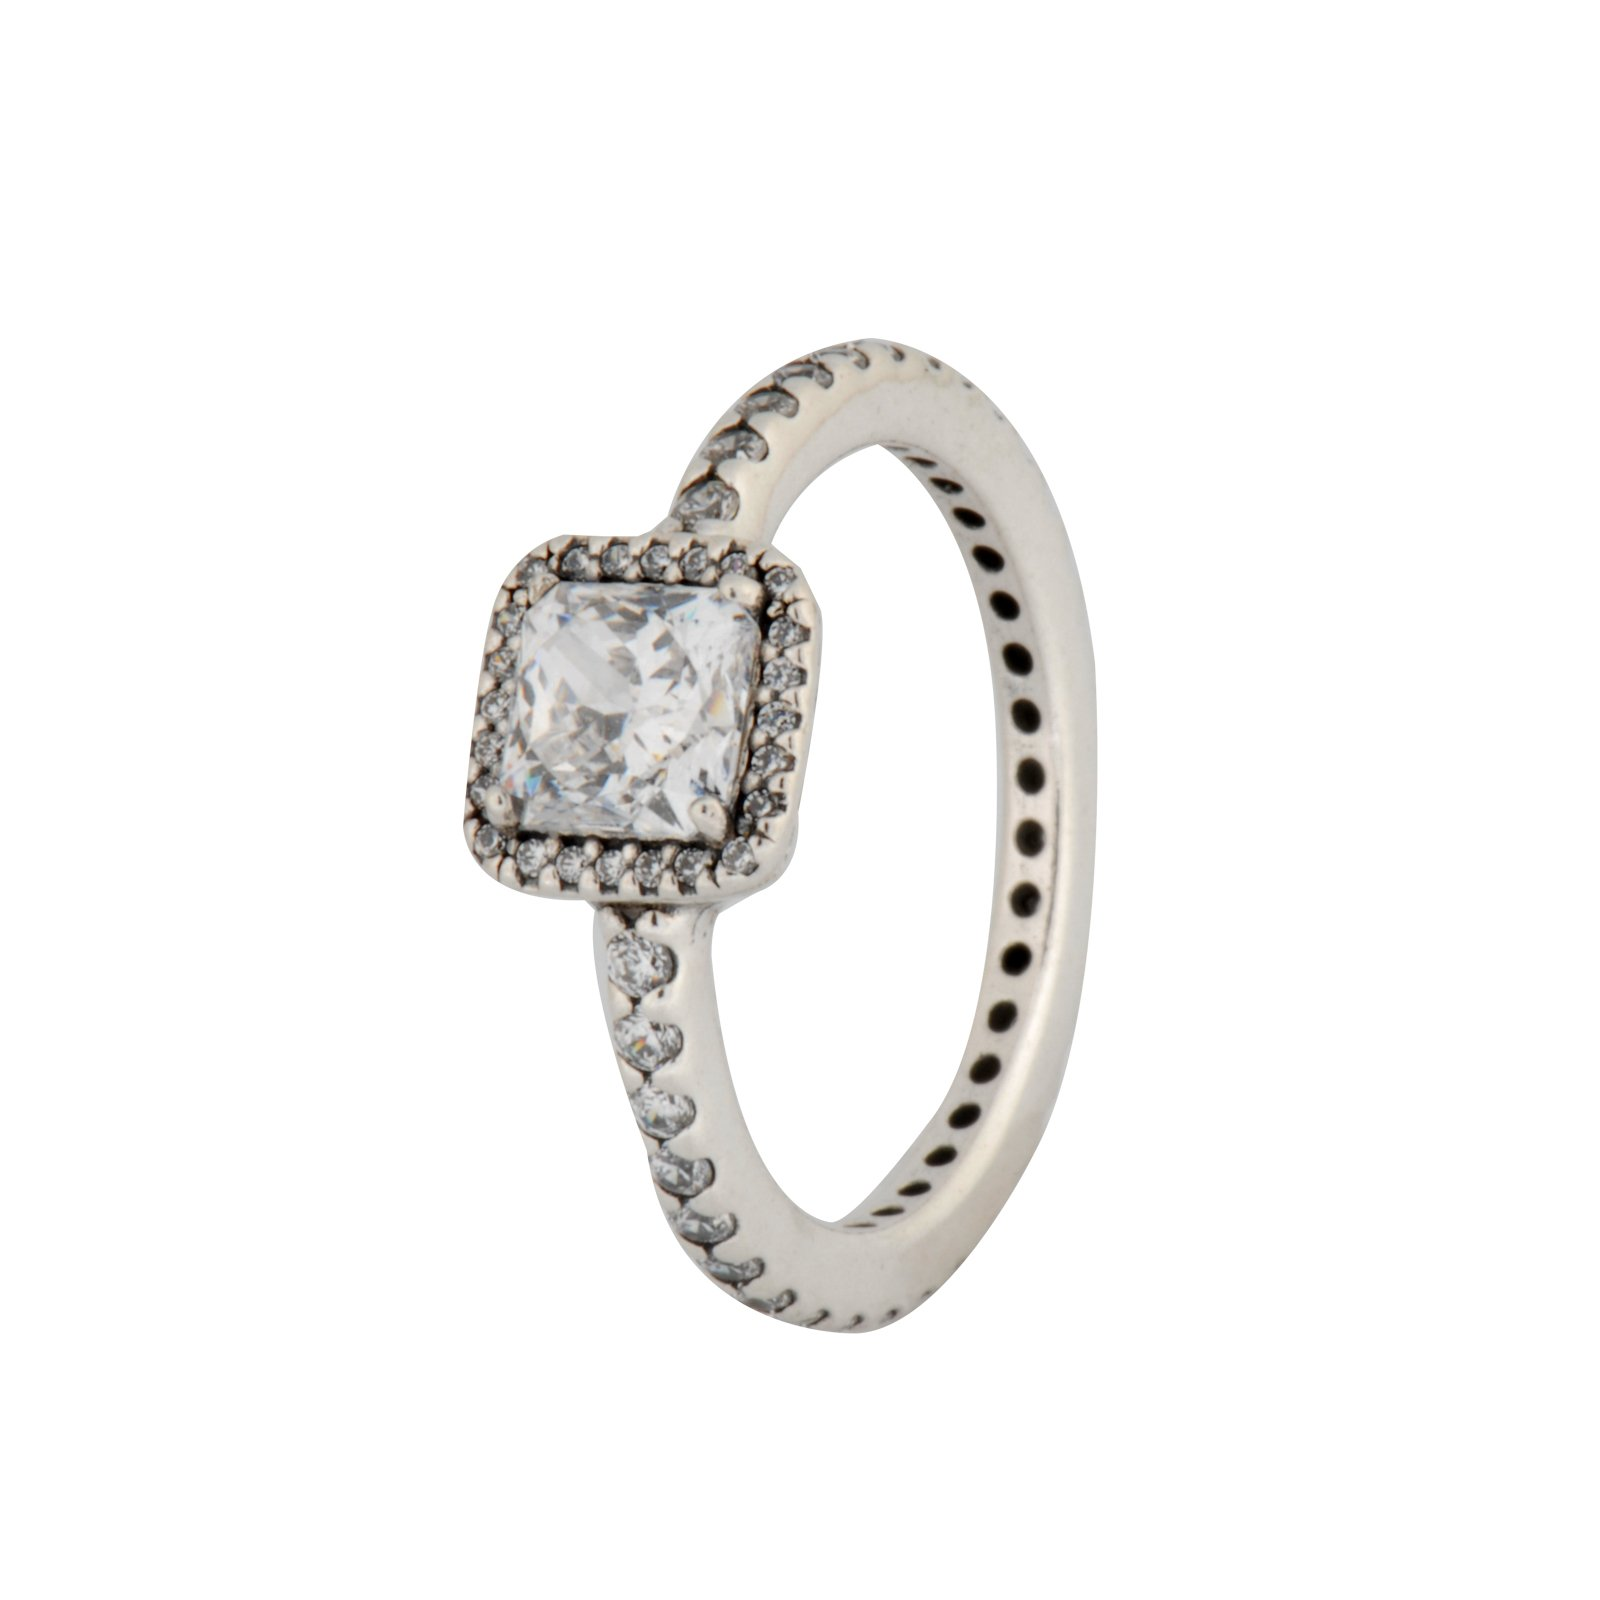 PANDORA Timeless Elegance Ring, Clear CZ 190947CZ-56 EU 7.5 US